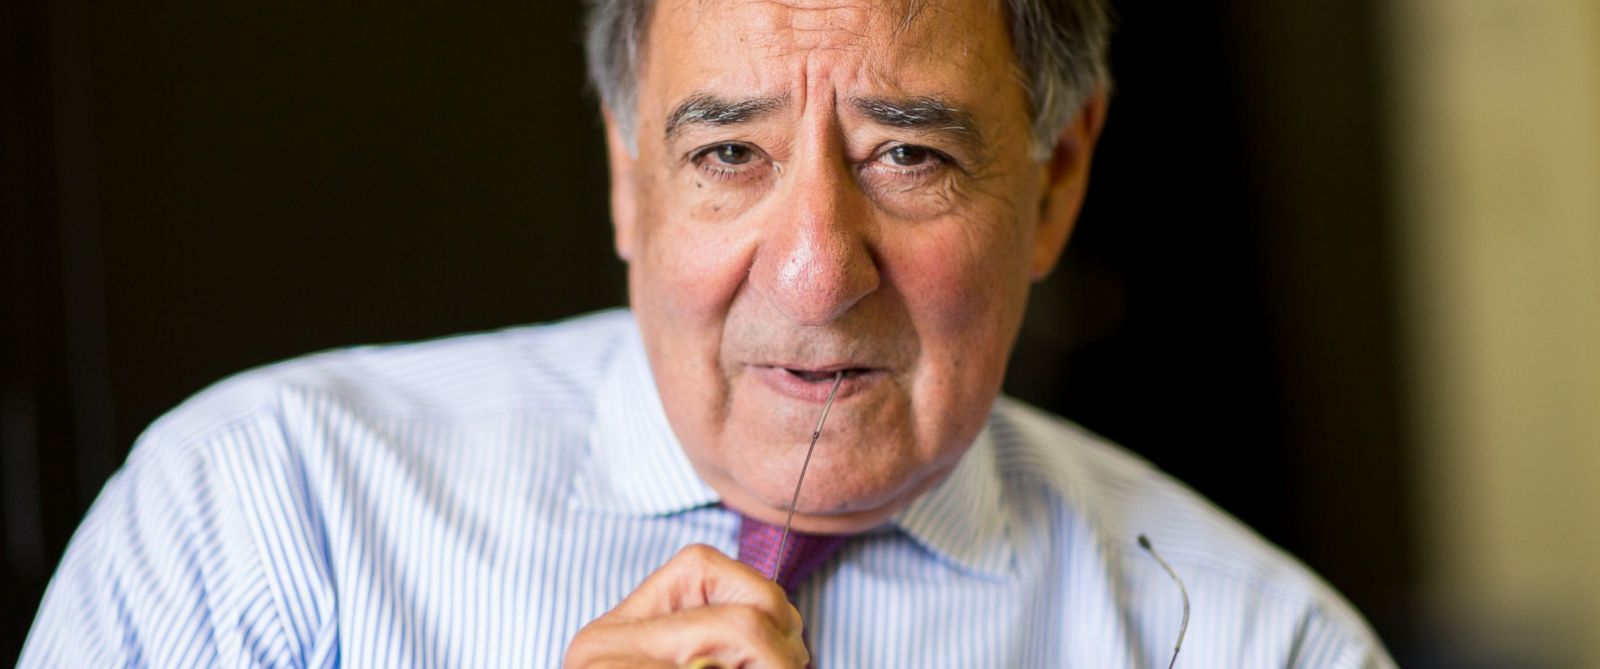 PHOTO: Former Director of the Central Intelligence Agency (DCIA) under President Barack Obama, Leon Panetta at the Panetta Institute, Seaside, California, 2015.